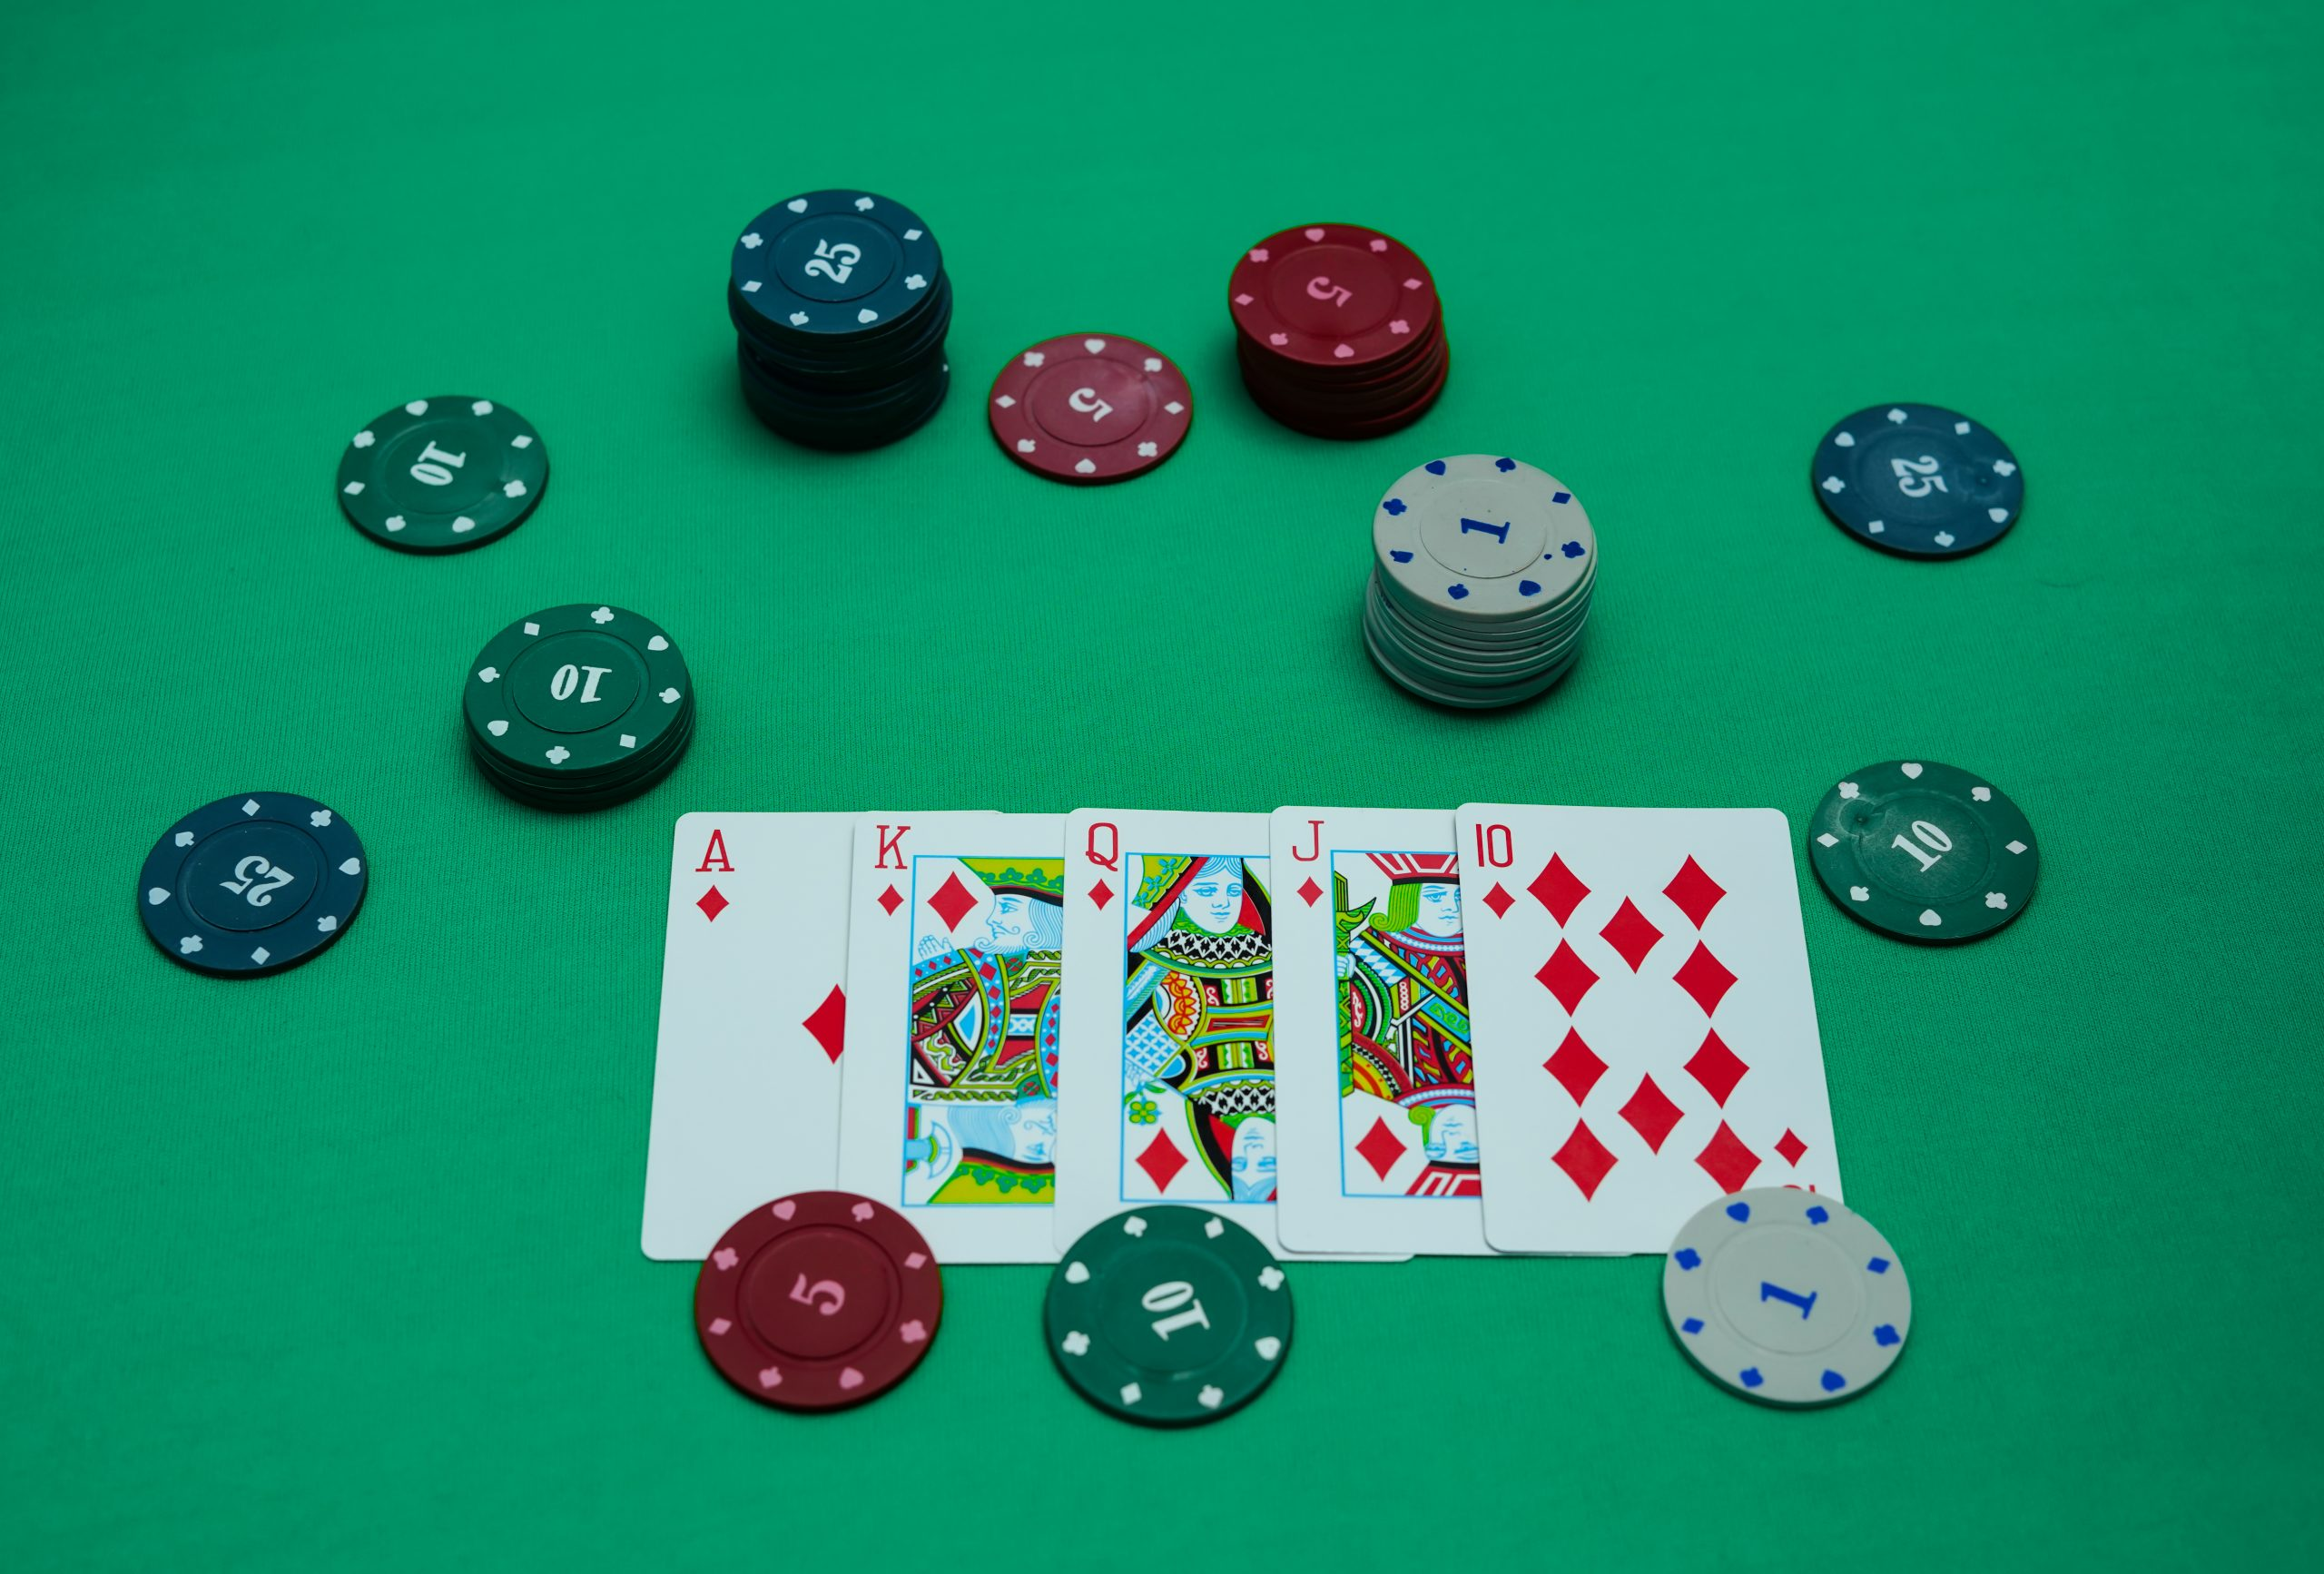 Stud poker chips and cards